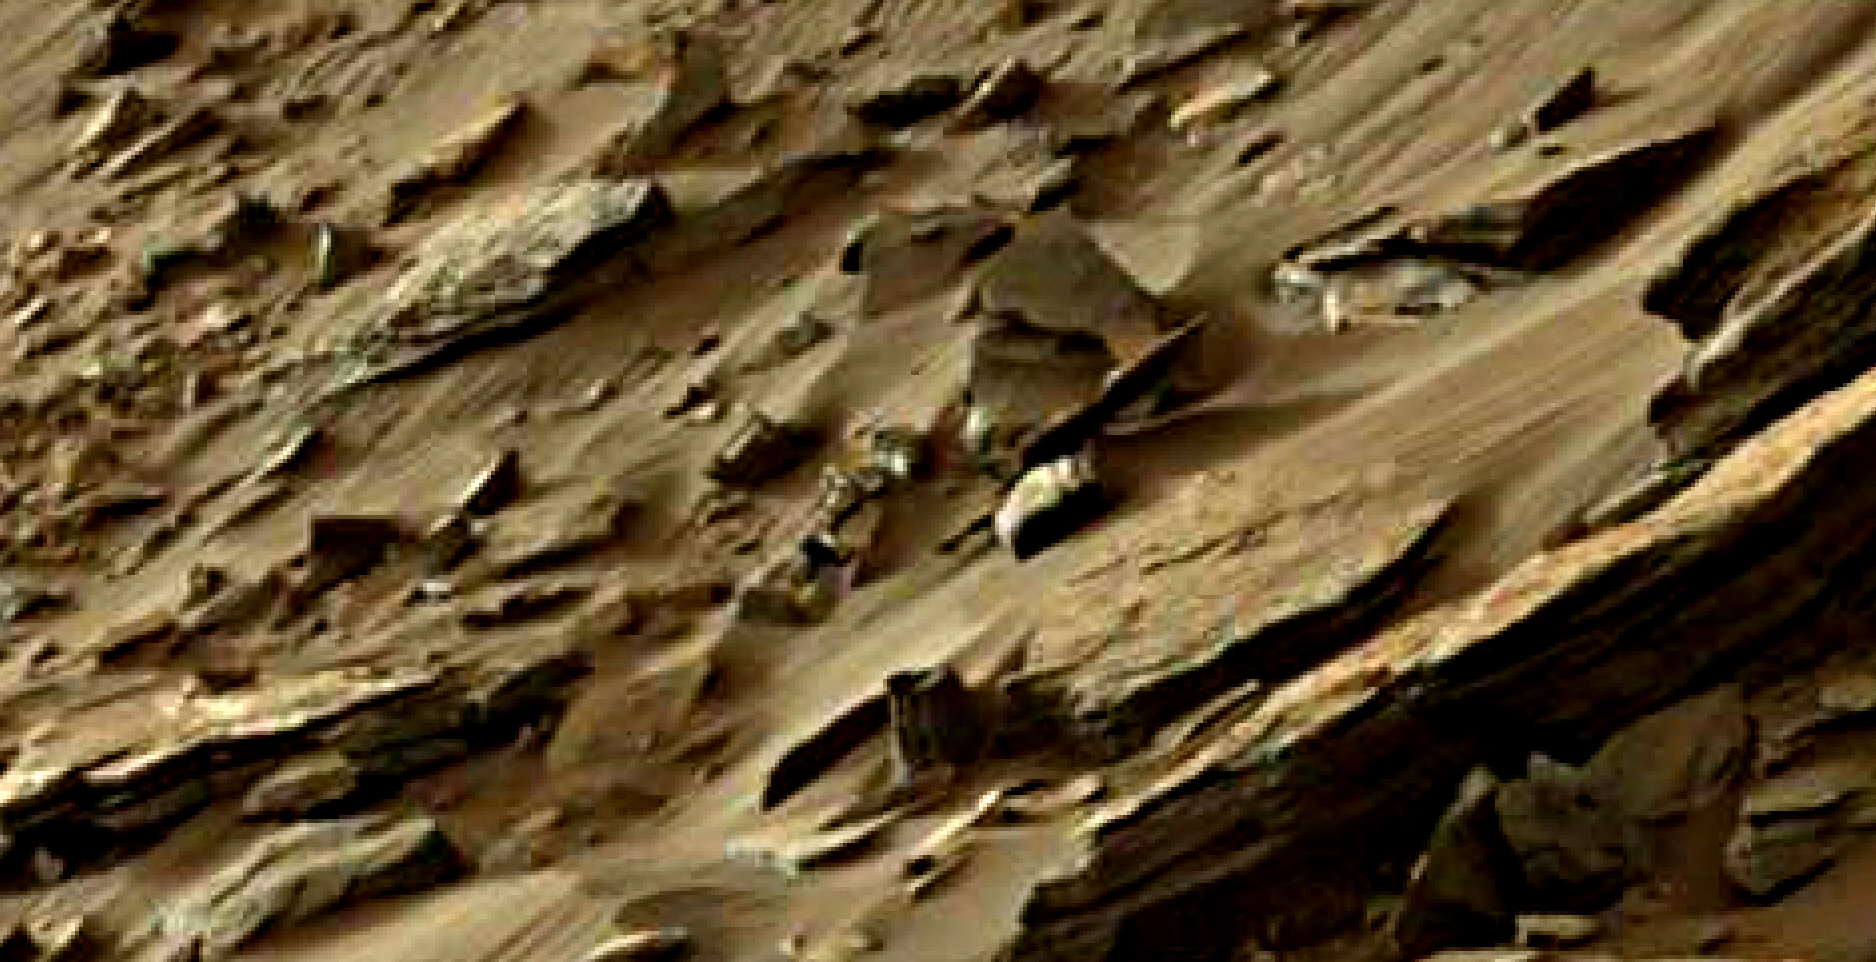 mars-sol-1454-anomaly-artifacts-30-was-life-on-mars